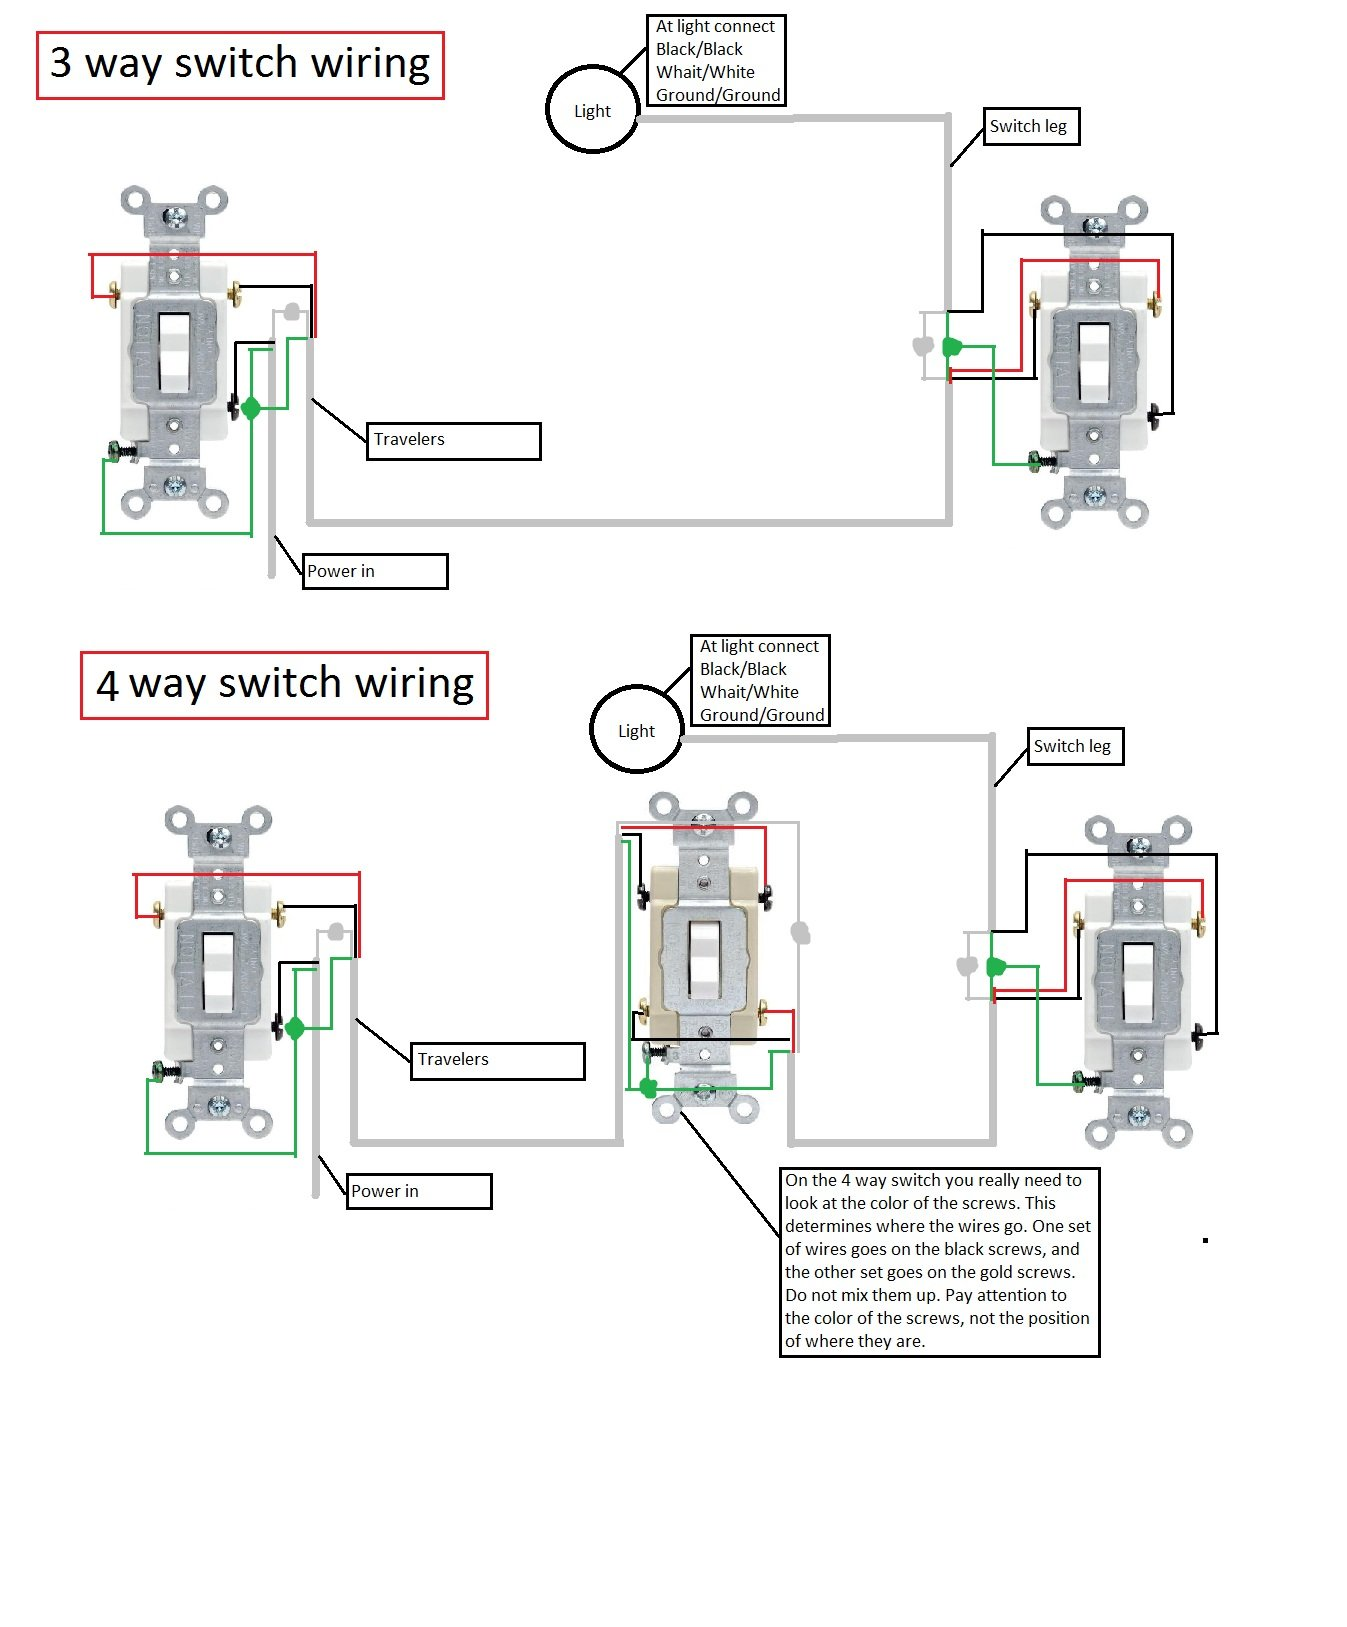 4 Way Switch Wiring Great Design Of Diagram How To Wire A Switched Outlet With Diagrams Free Engine Image For User Multiple